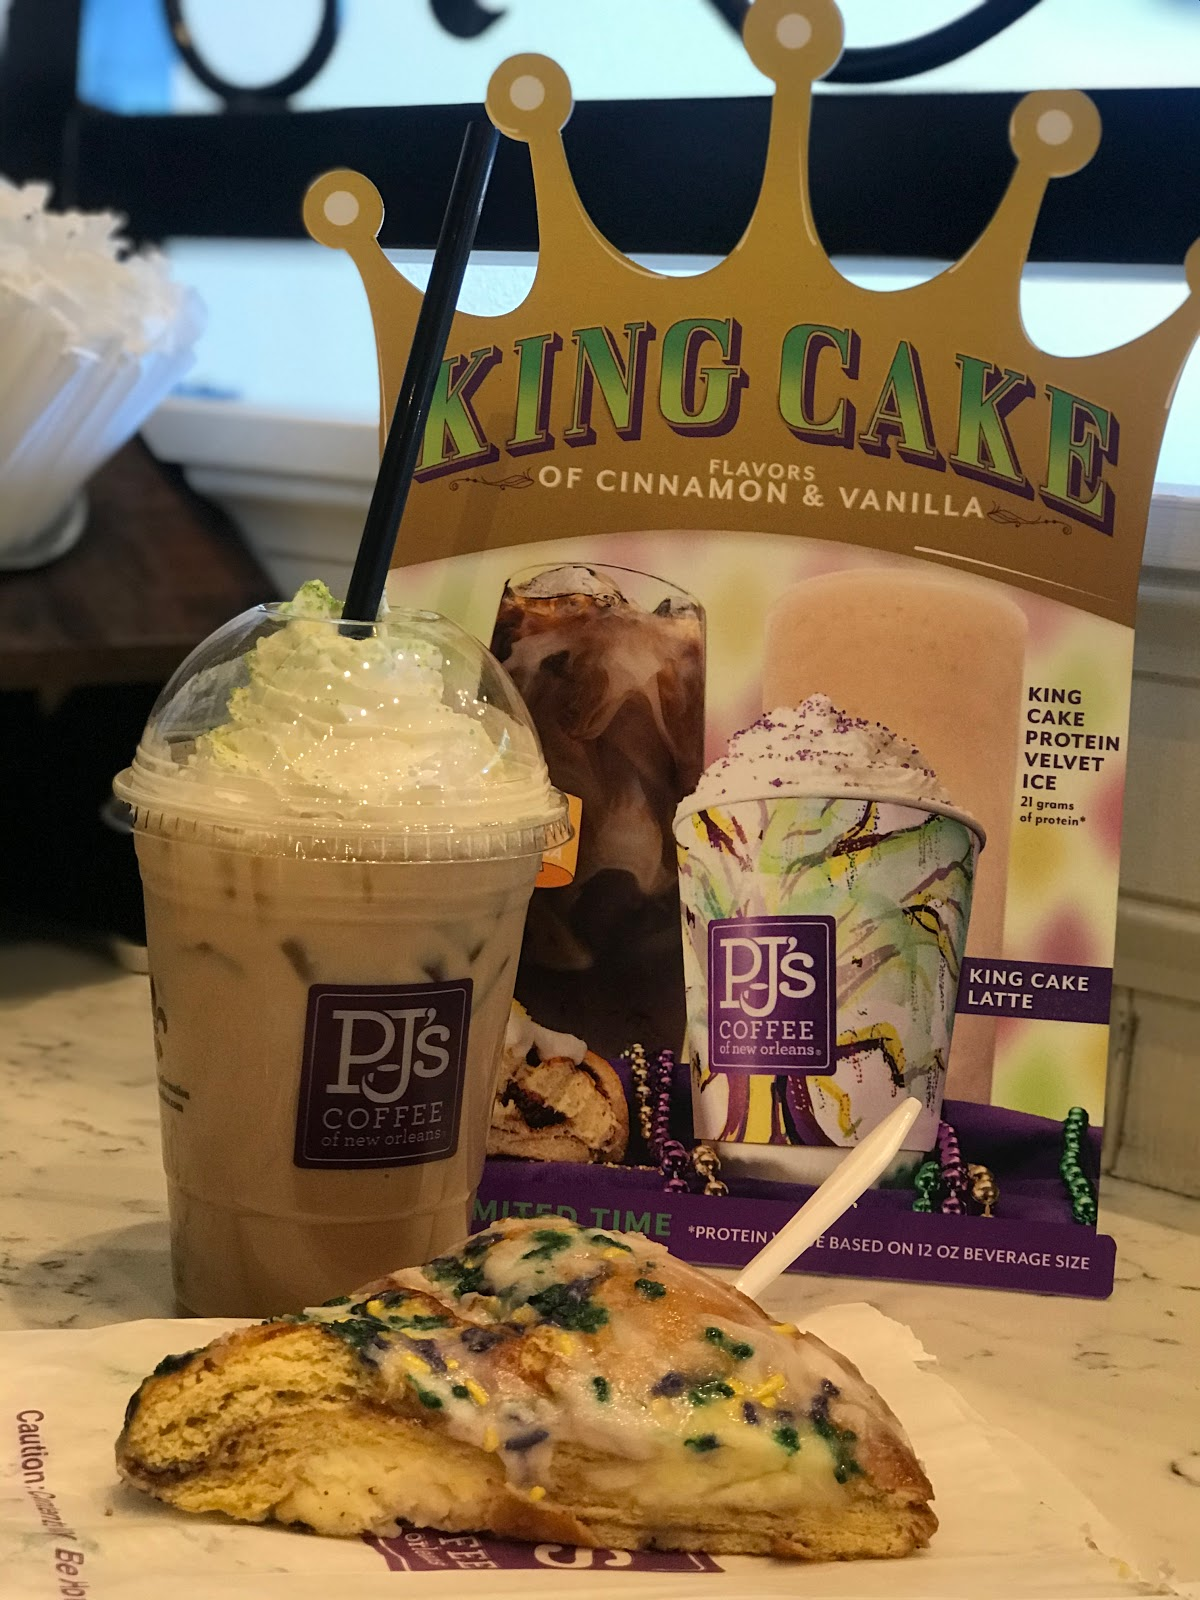 PJ's king cake and iced coffee visit while on road trip through Bossier City Louisiana